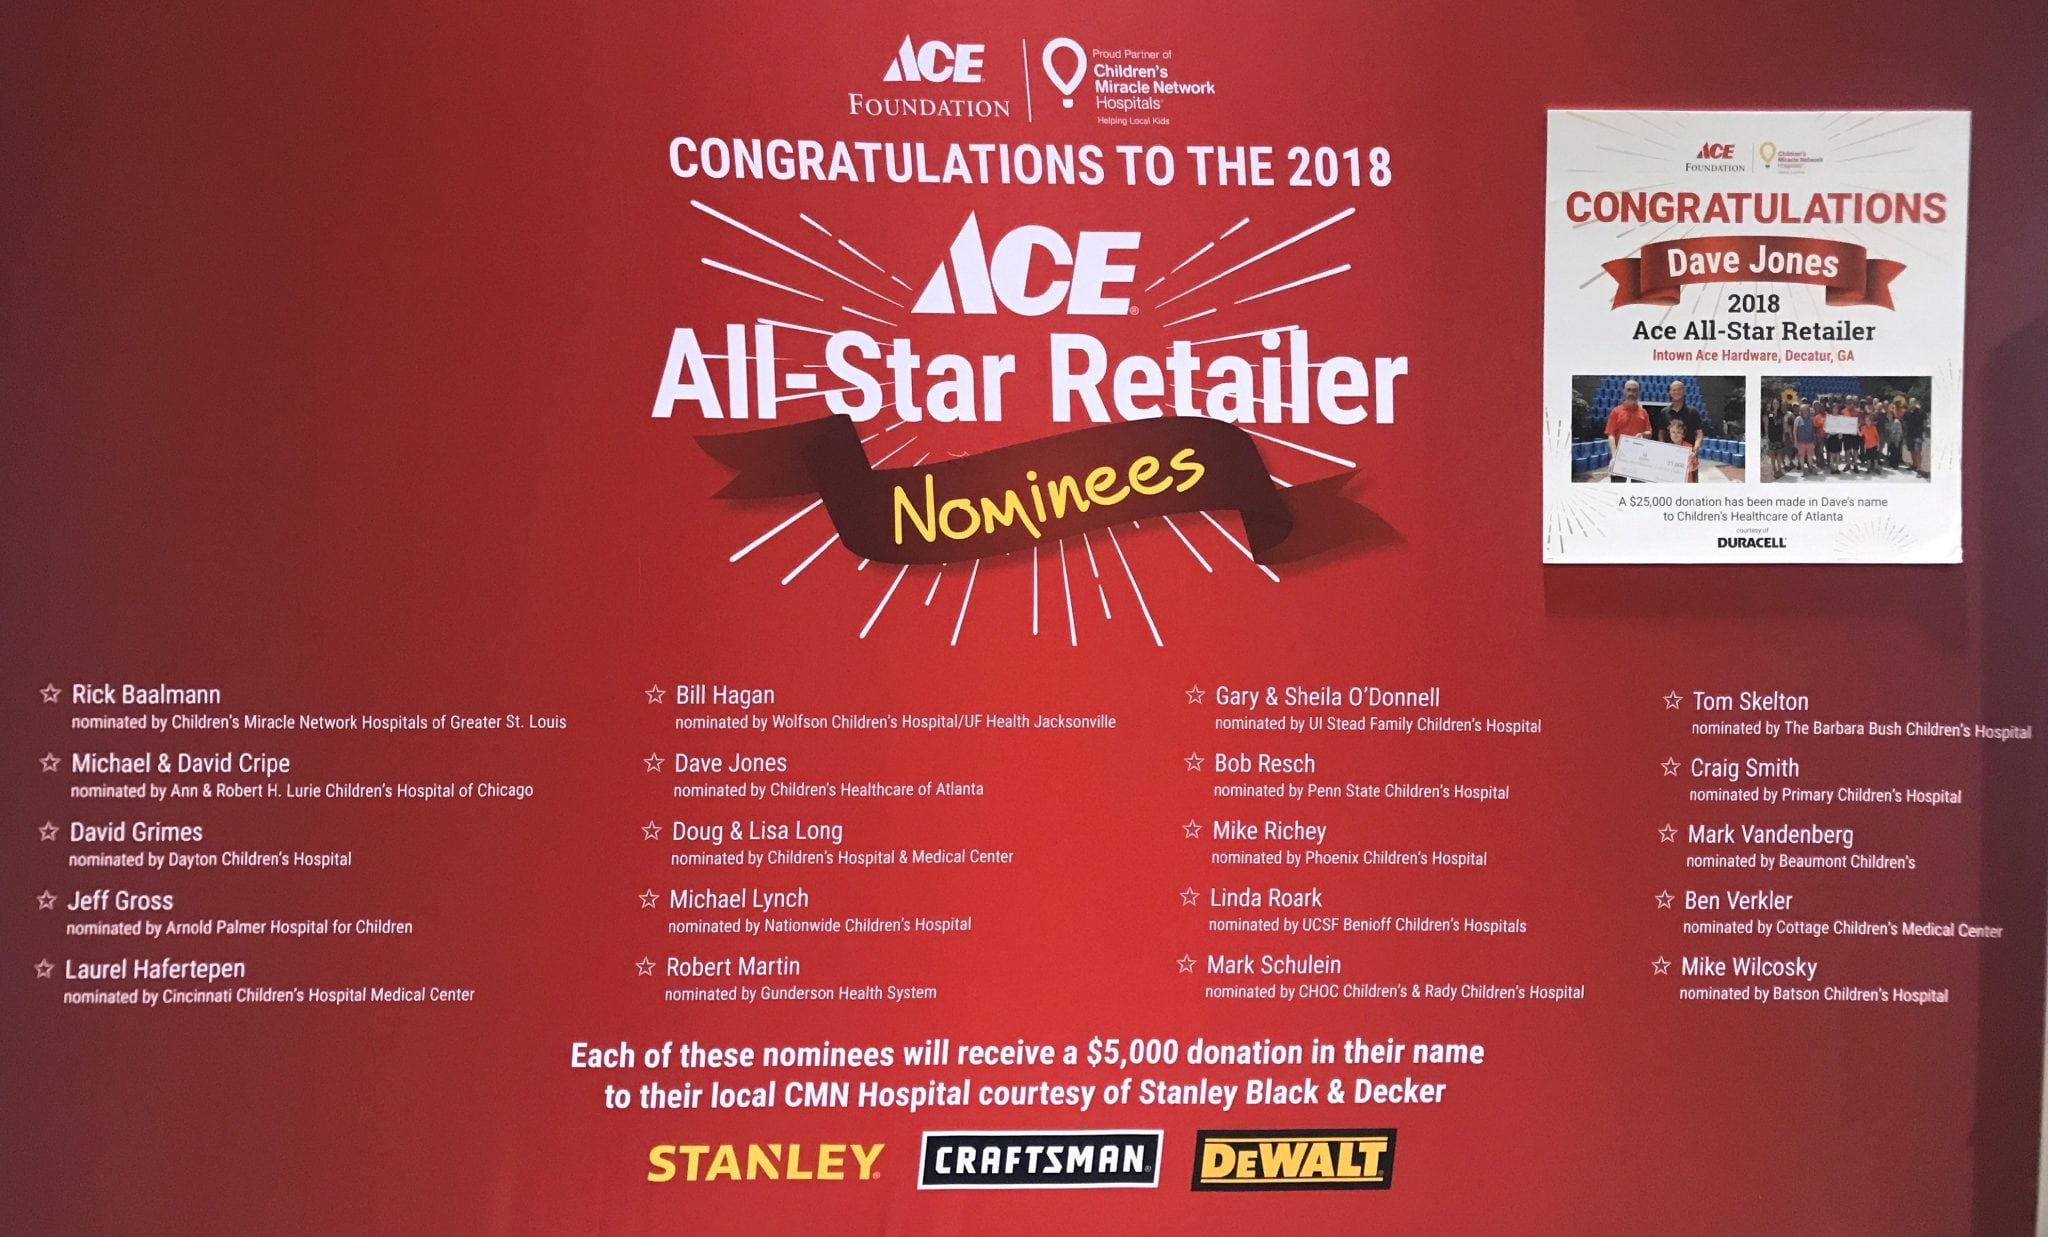 d2cd374c5243a8 Ace Hardware Foundation recently announced the 2018 All Star Retailer Award